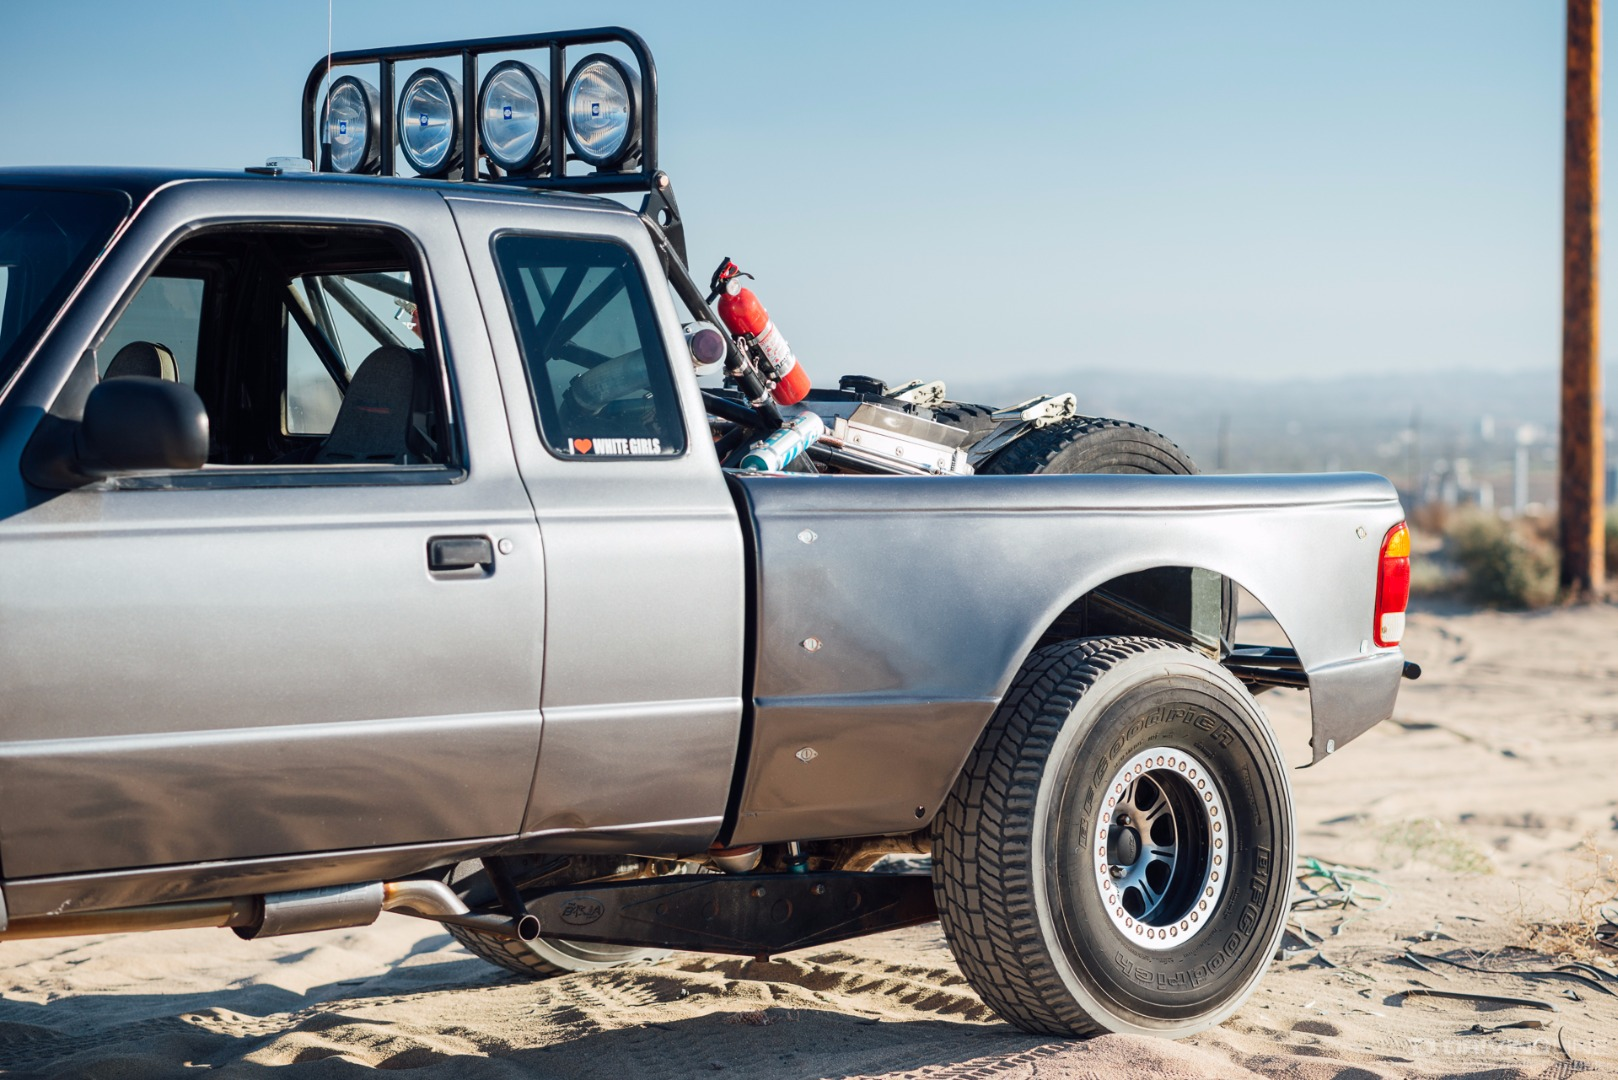 Jrs Desert Dominating Ford Ranger Prerunner besides Jrs Desert Dominating Ford Ranger Prerunner as well Jrs Desert Dominating Ford Ranger Prerunner further Jrs Desert Dominating Ford Ranger Prerunner as well Desert Race Car. on jrs desert dominating ford ranger prerunner